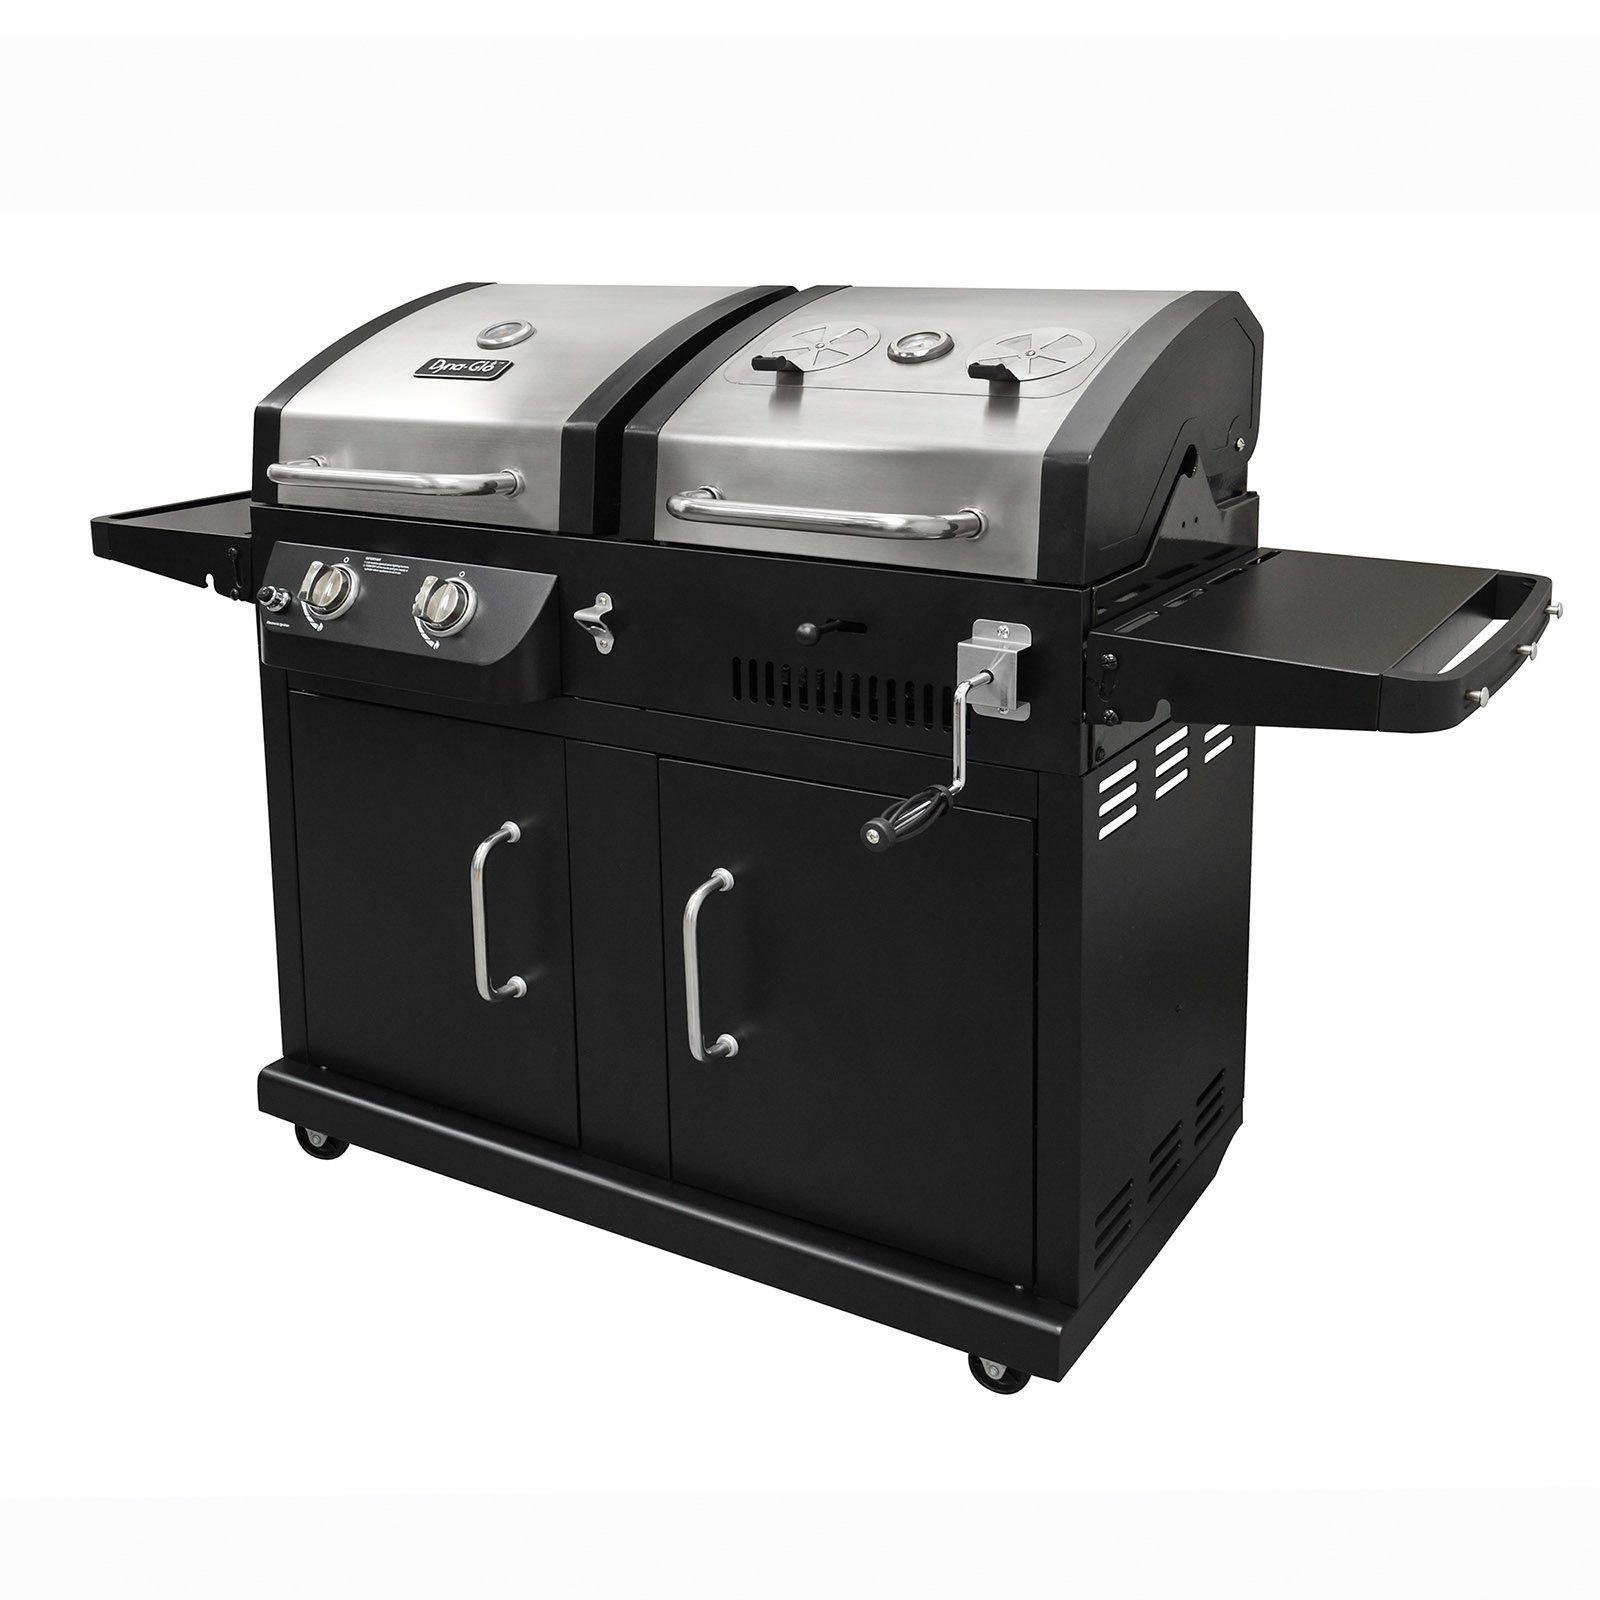 Dyna Glo Dgb730snb D 2 Burner Stainless Steel Gas And Charcoal Bbq Grill From Hayneedle Com Gas Charcoal Bbq Charcoal Bbq Grill Gas Charcoal Grill